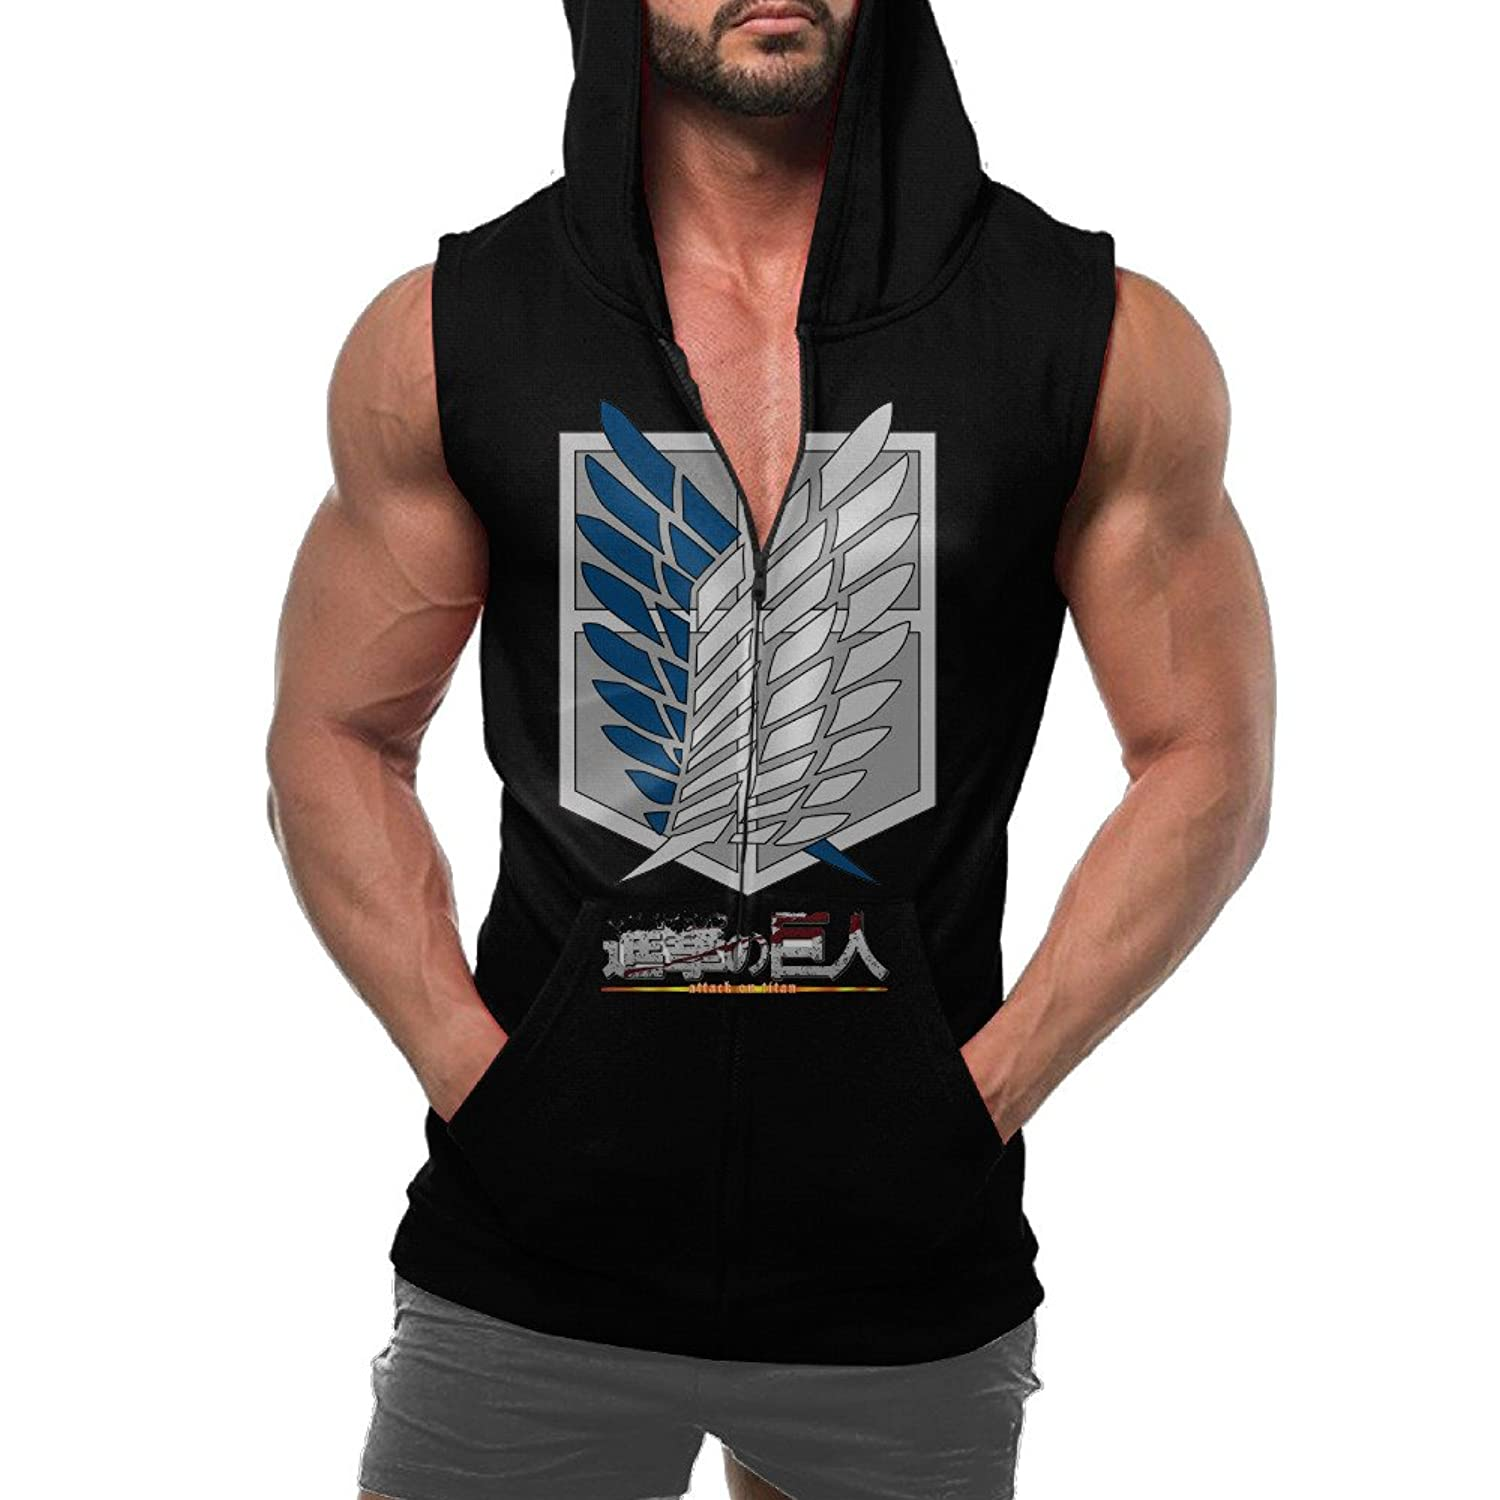 Advancing Titans Hoodie Sweatshirt Sleeveless With Pocket